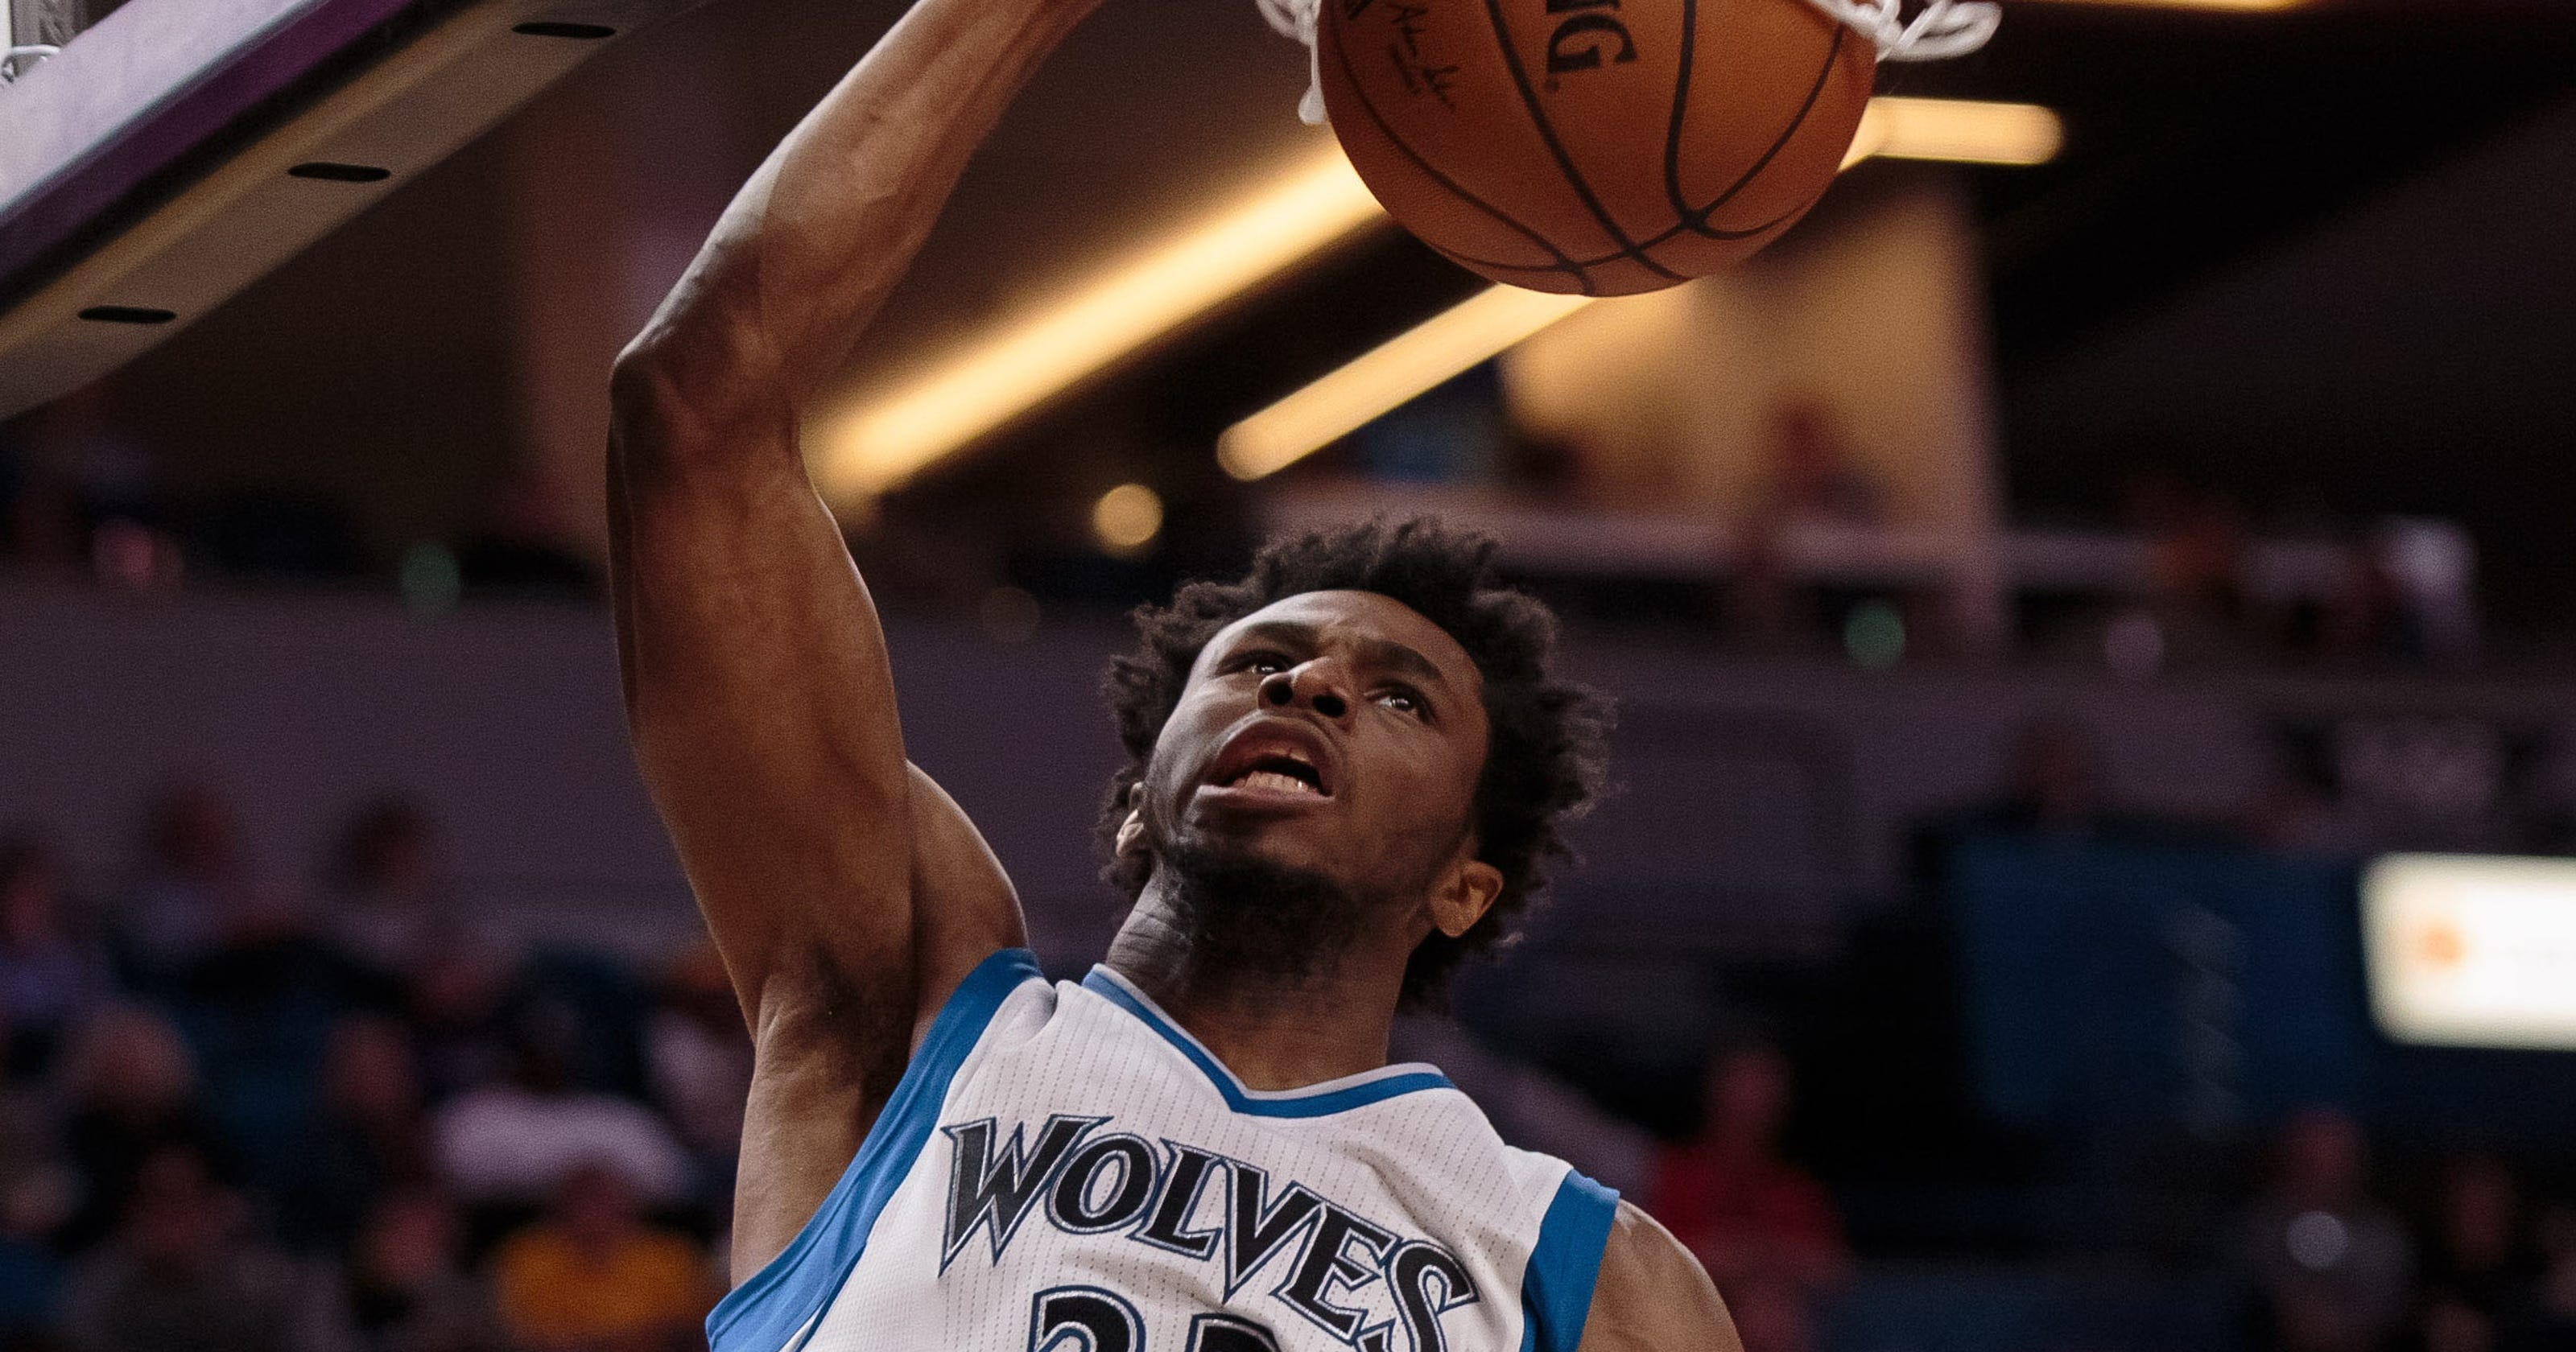 463cca9c76b Andrew Wiggins pours in 47 to power T wolves over Lakers